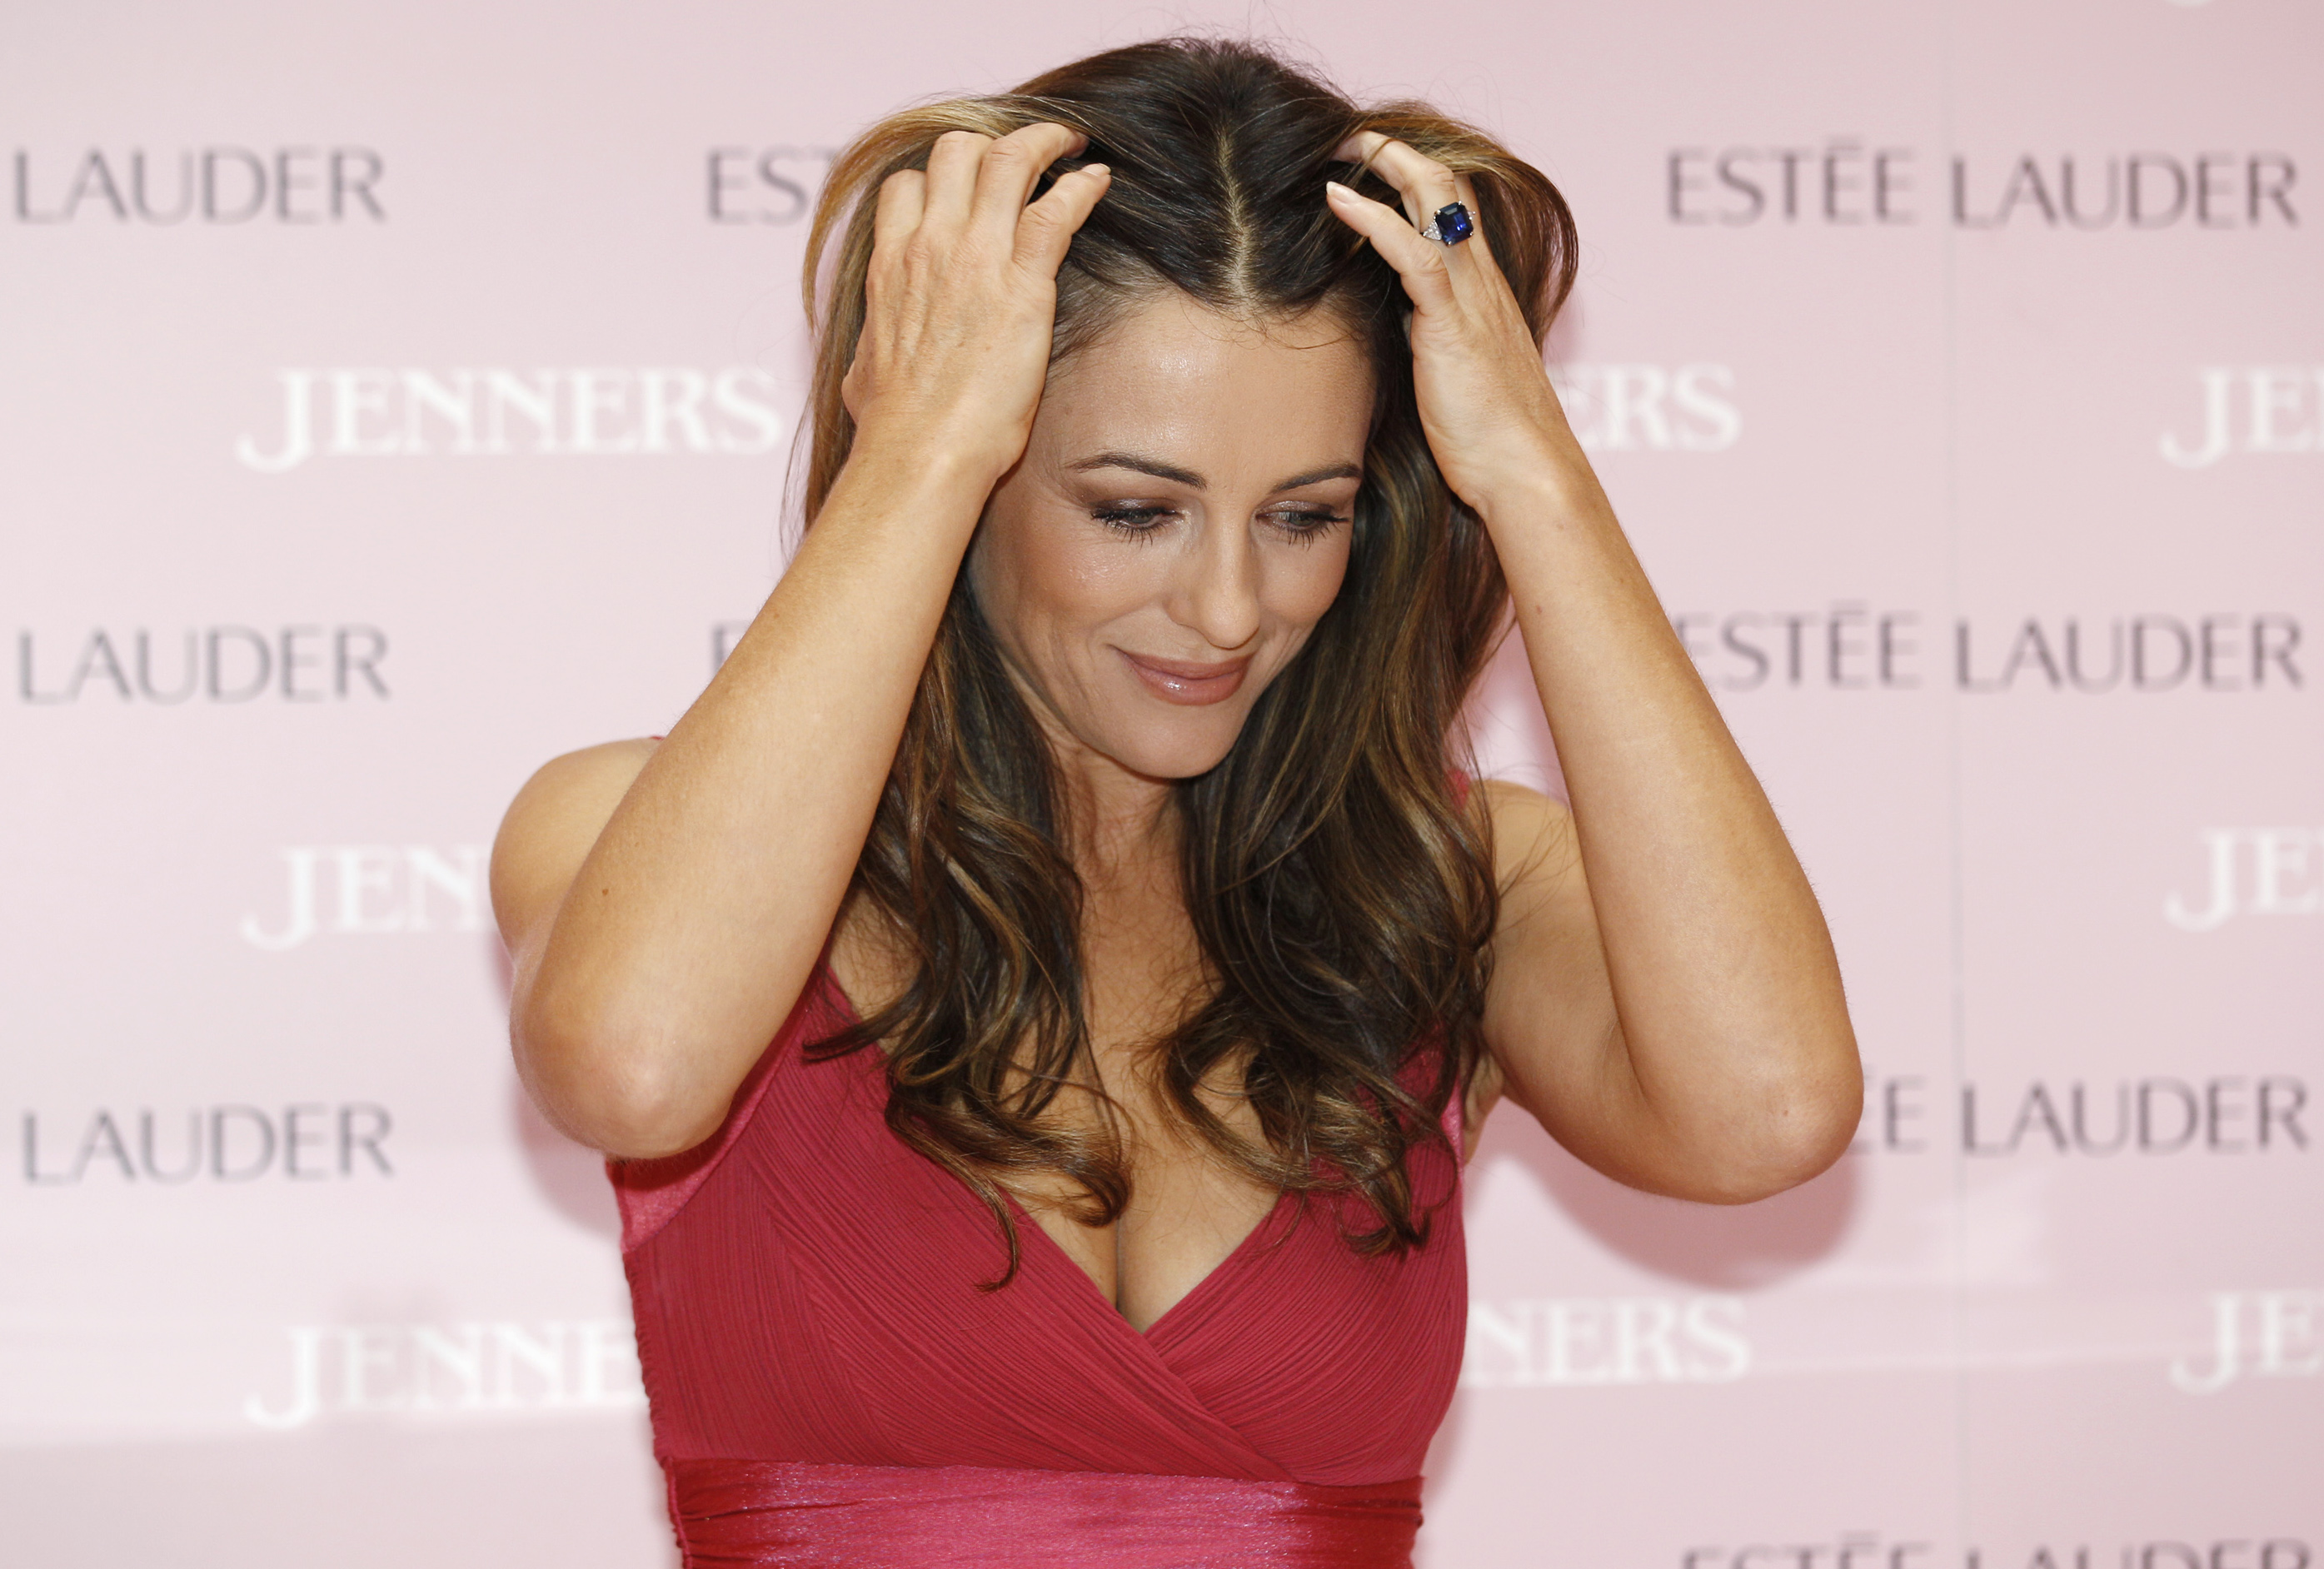 Actress and model Liz Hurley wears her engagement ring as she attends a breast cancer awareness launch at a department store in Edinburgh, Scotland October 4, 2011. REUTERS/David Moir (BRITAIN - Tags: ENTERTAINMENT HEALTH PROFILE)